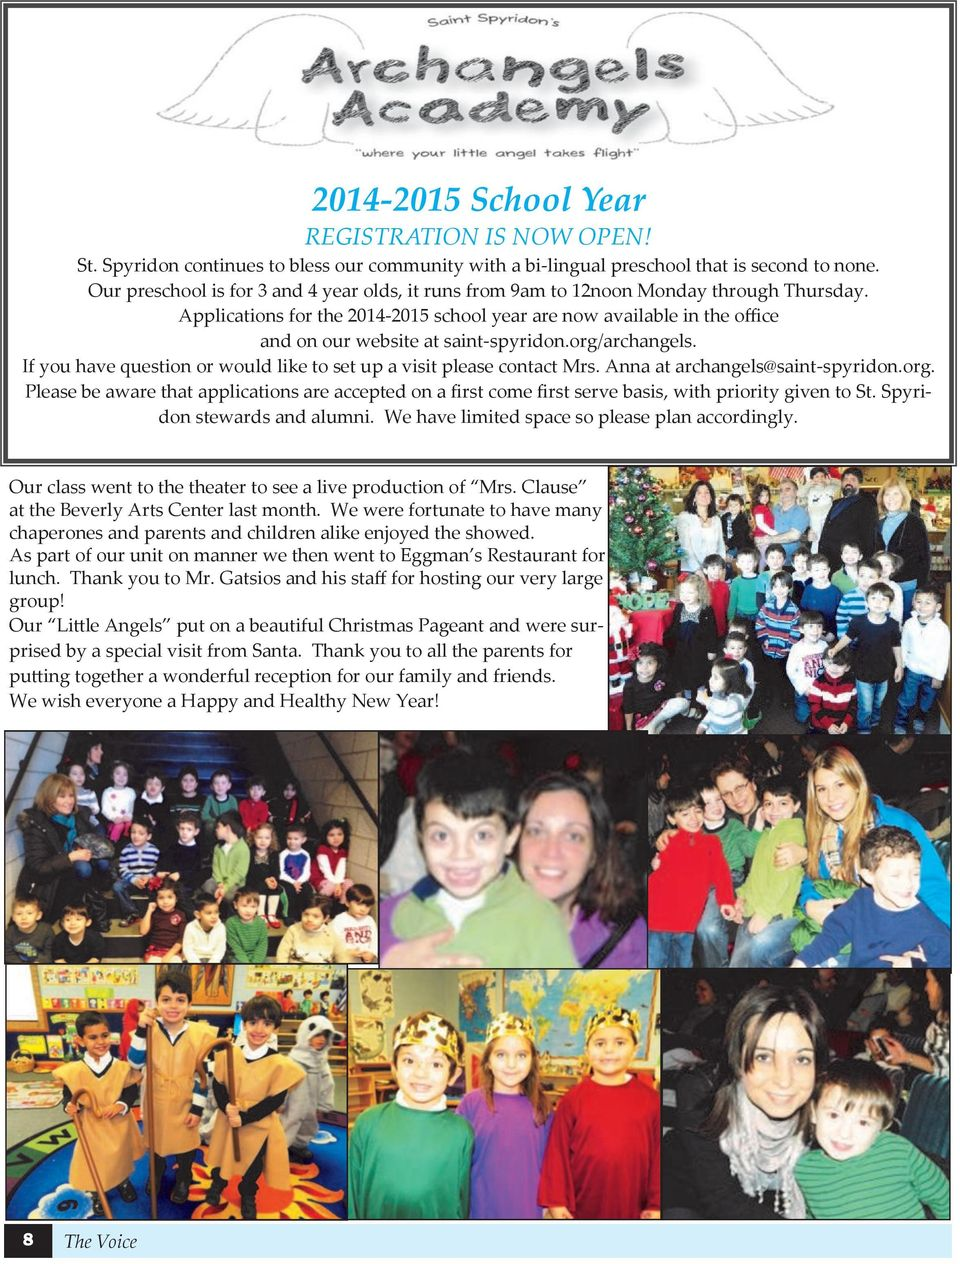 Applications for the 2014-2015 school year are now available in the office and on our website at saint-spyridon.org/archangels. If you have question or would like to set up a visit please contact Mrs.